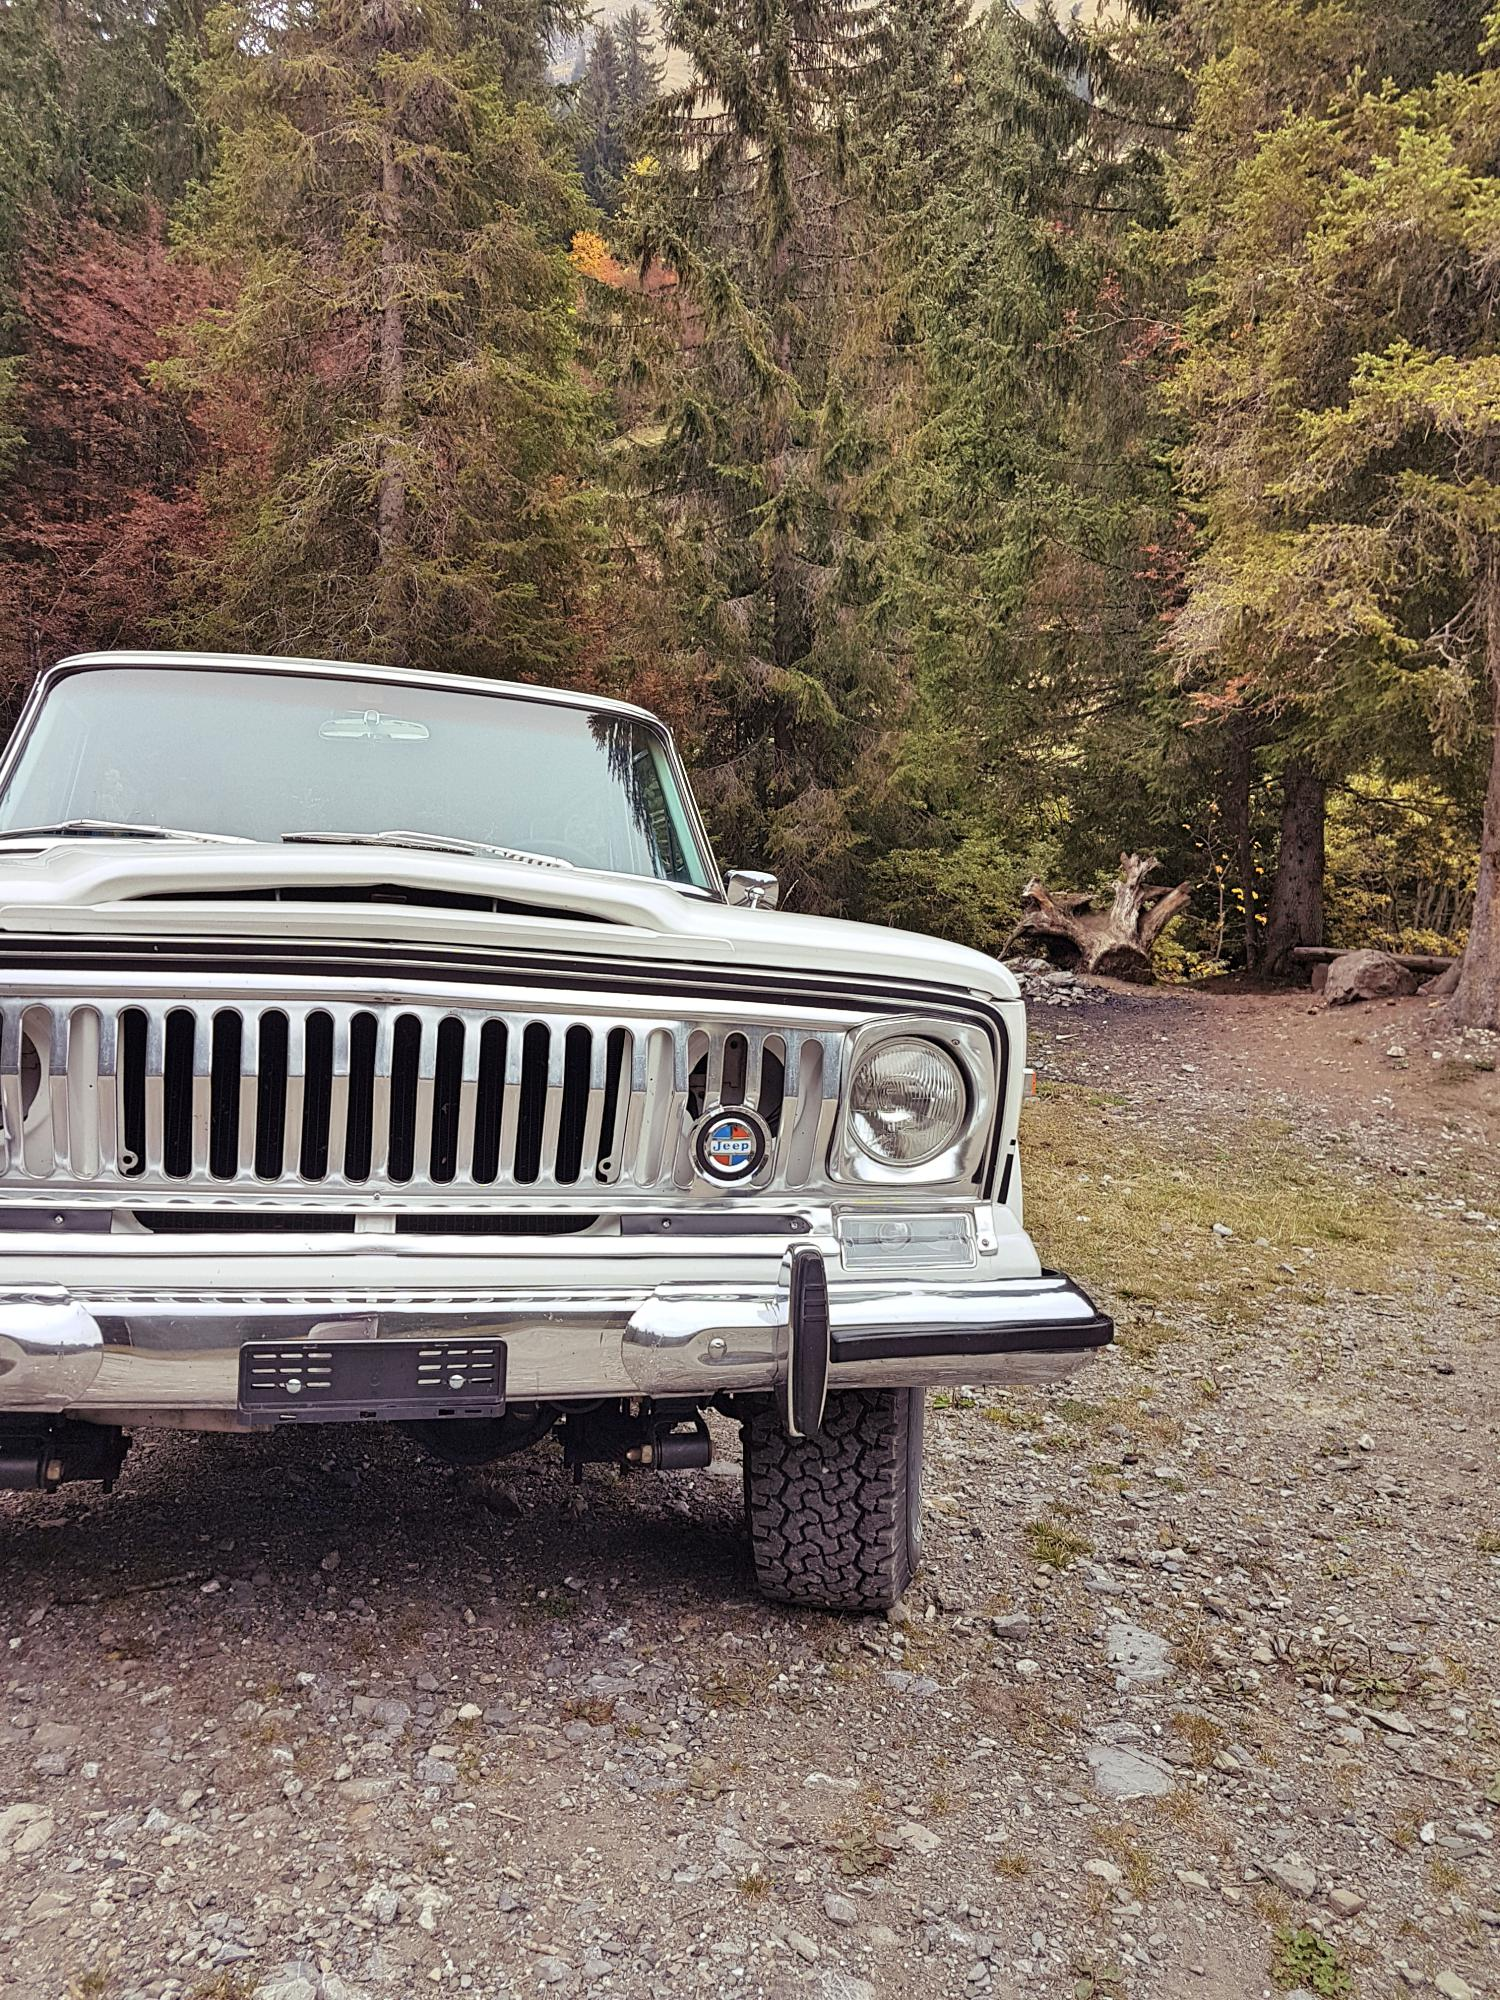 jeep-cherokee-chief-1978-shooting-morgins-switzerland-110.jpg